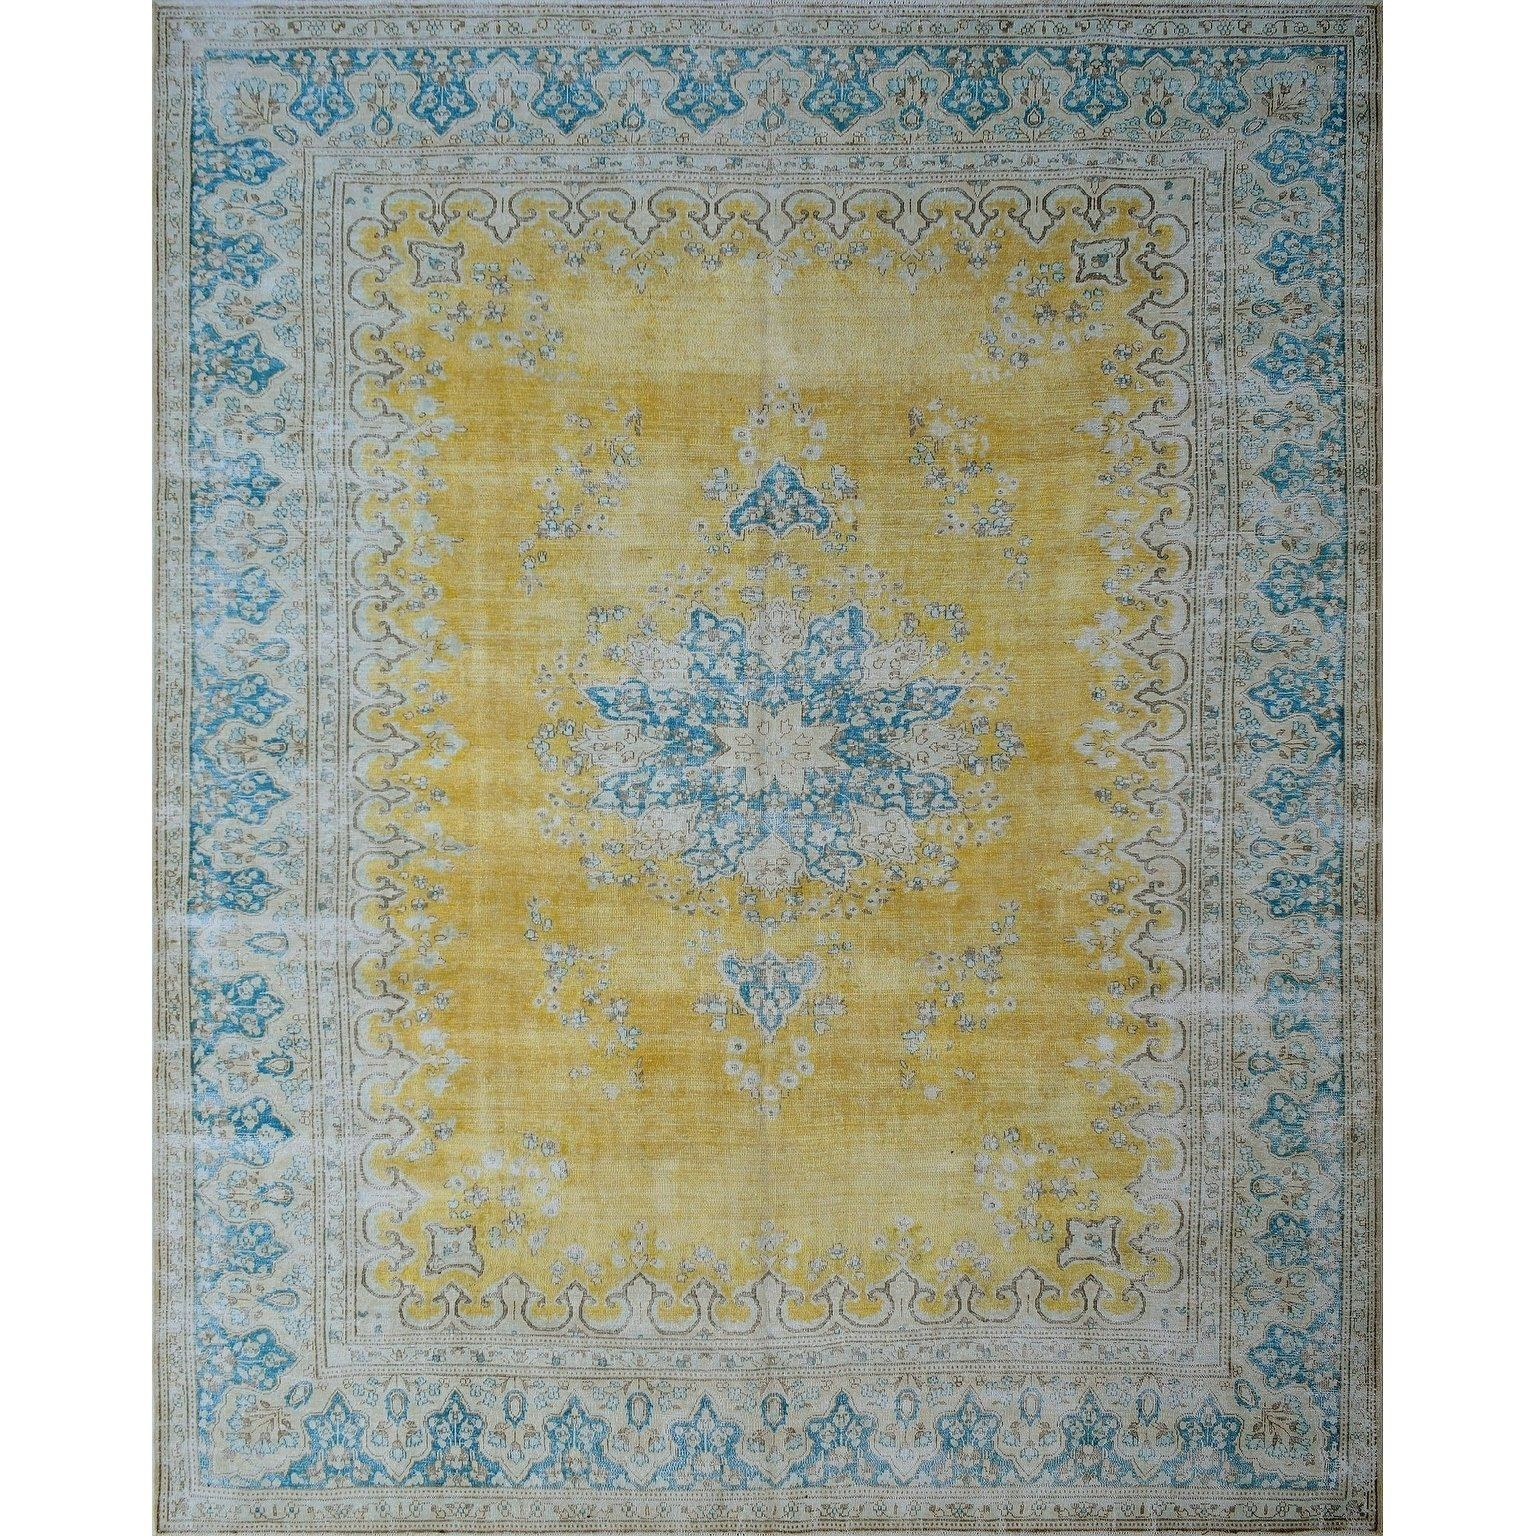 Refurbished Noori Rug Gold Blue Rug 9 8 X 12 6 9 8 X 12 6 Wool Oriental Rugs Colorful Rugs Area Rugs